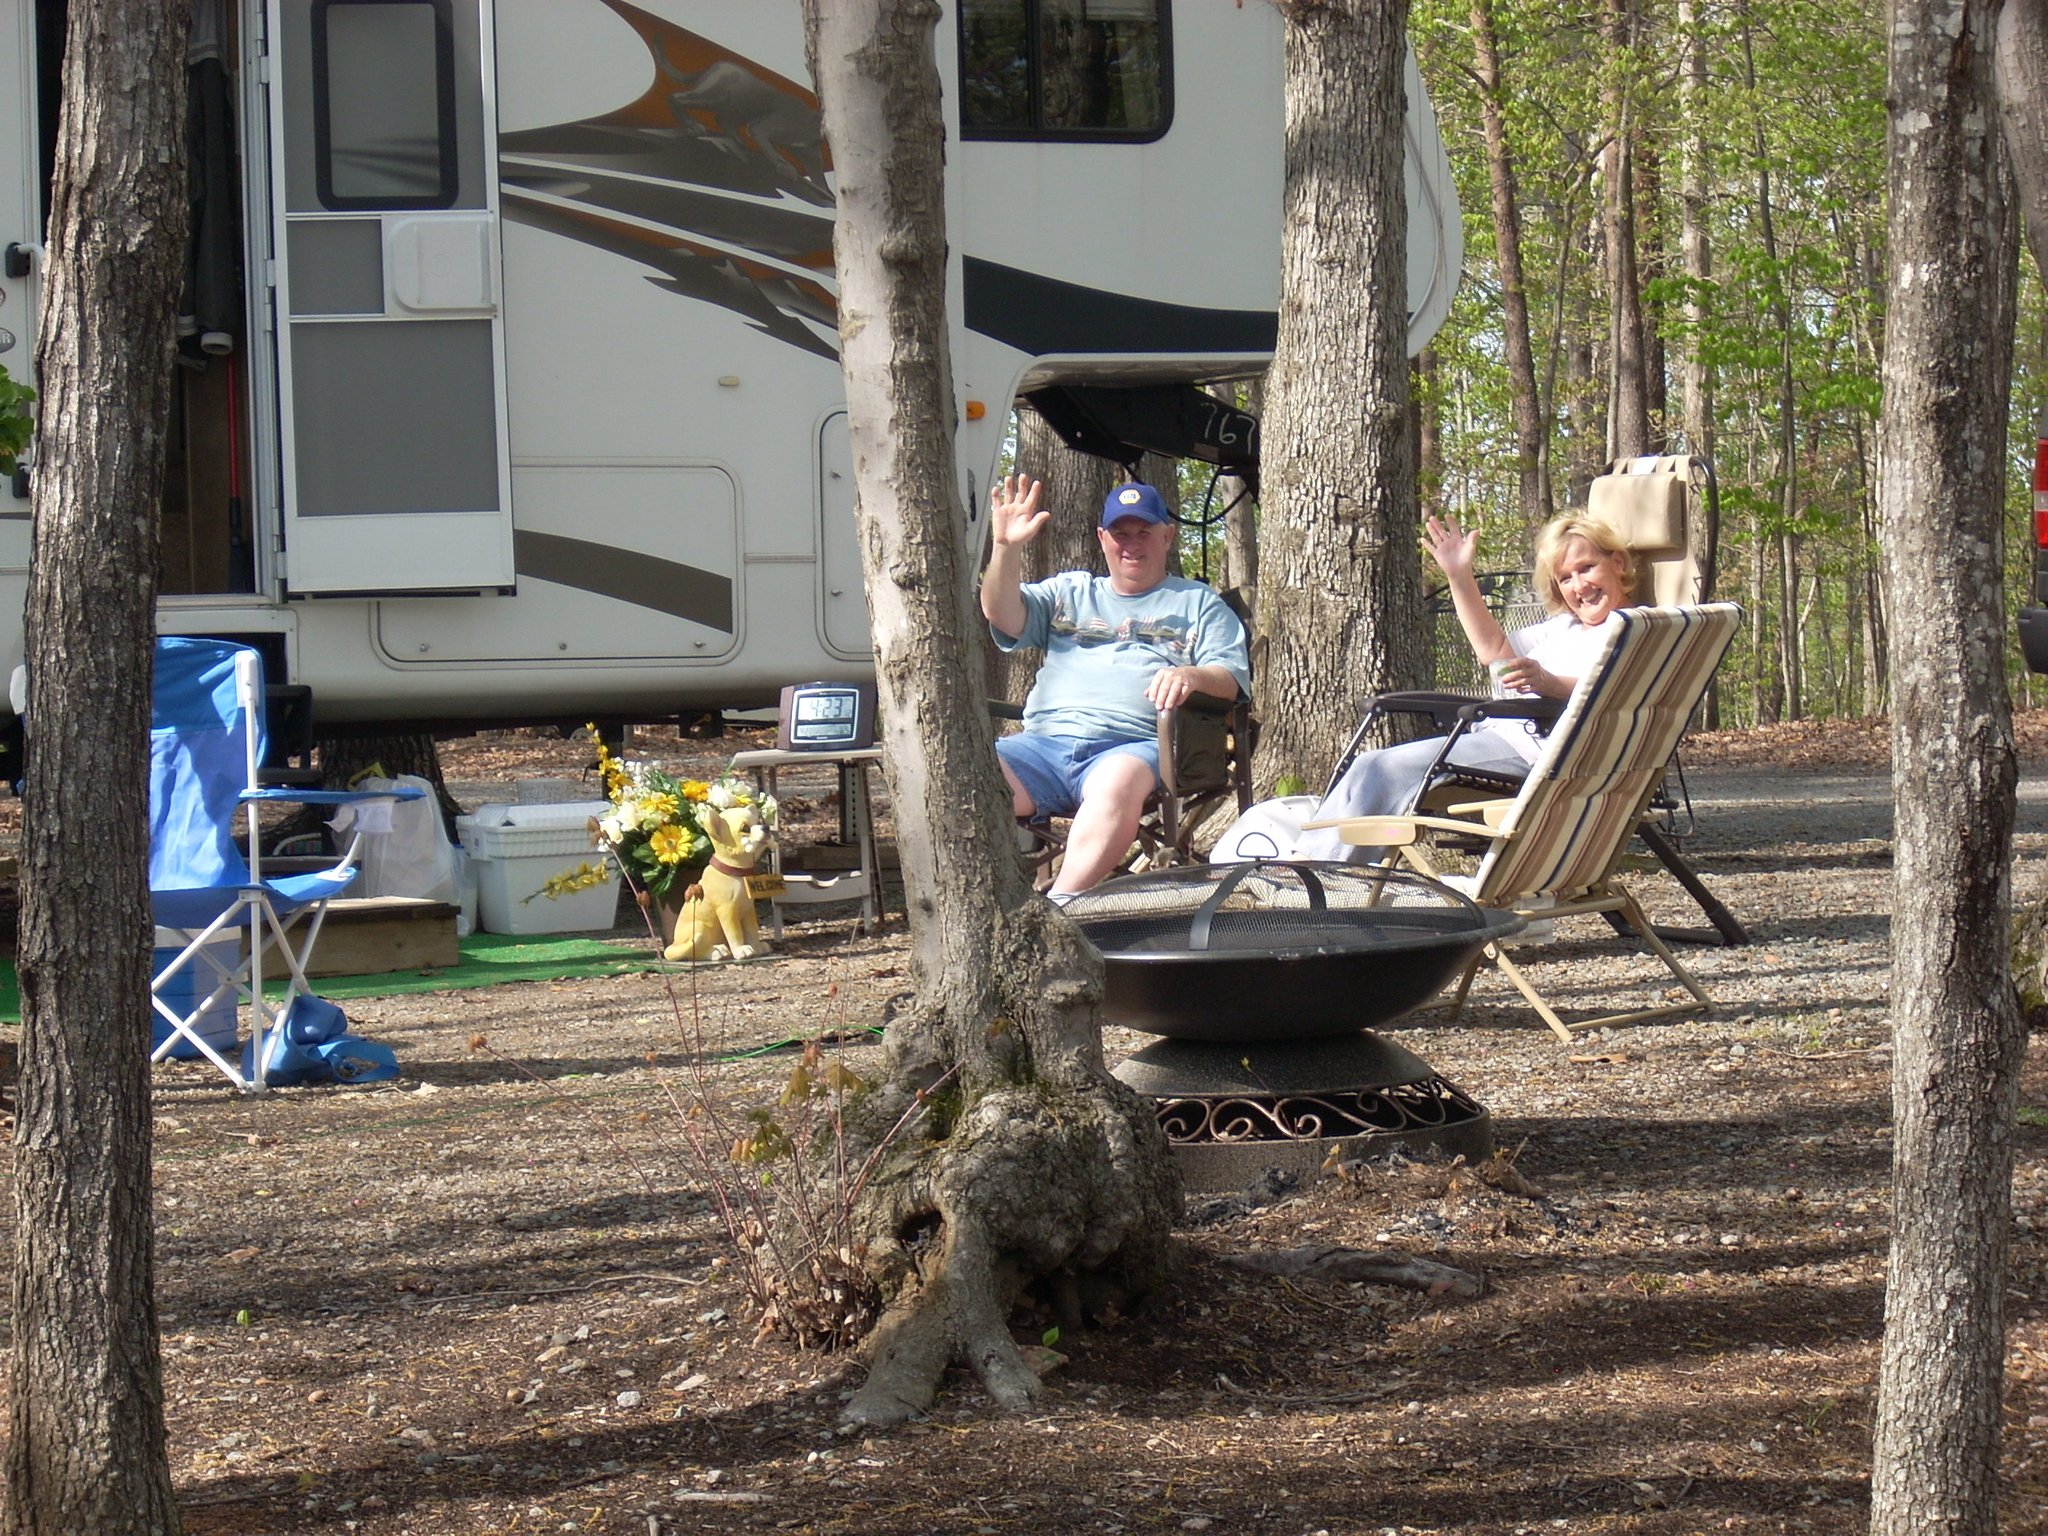 What does full hookup camping mean